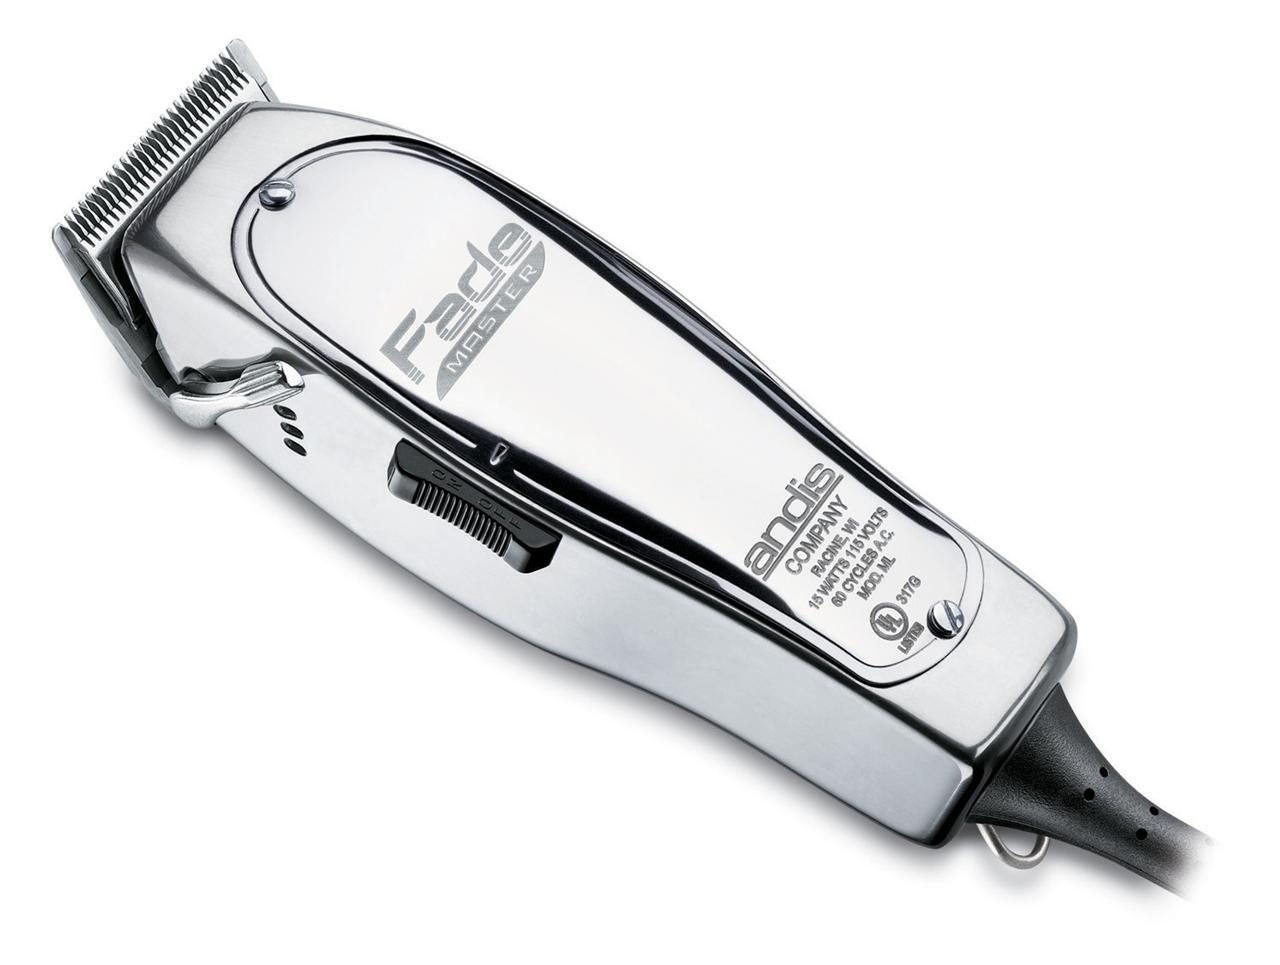 Andis Professional Fade Master Hair Clipper Model Ml 01690